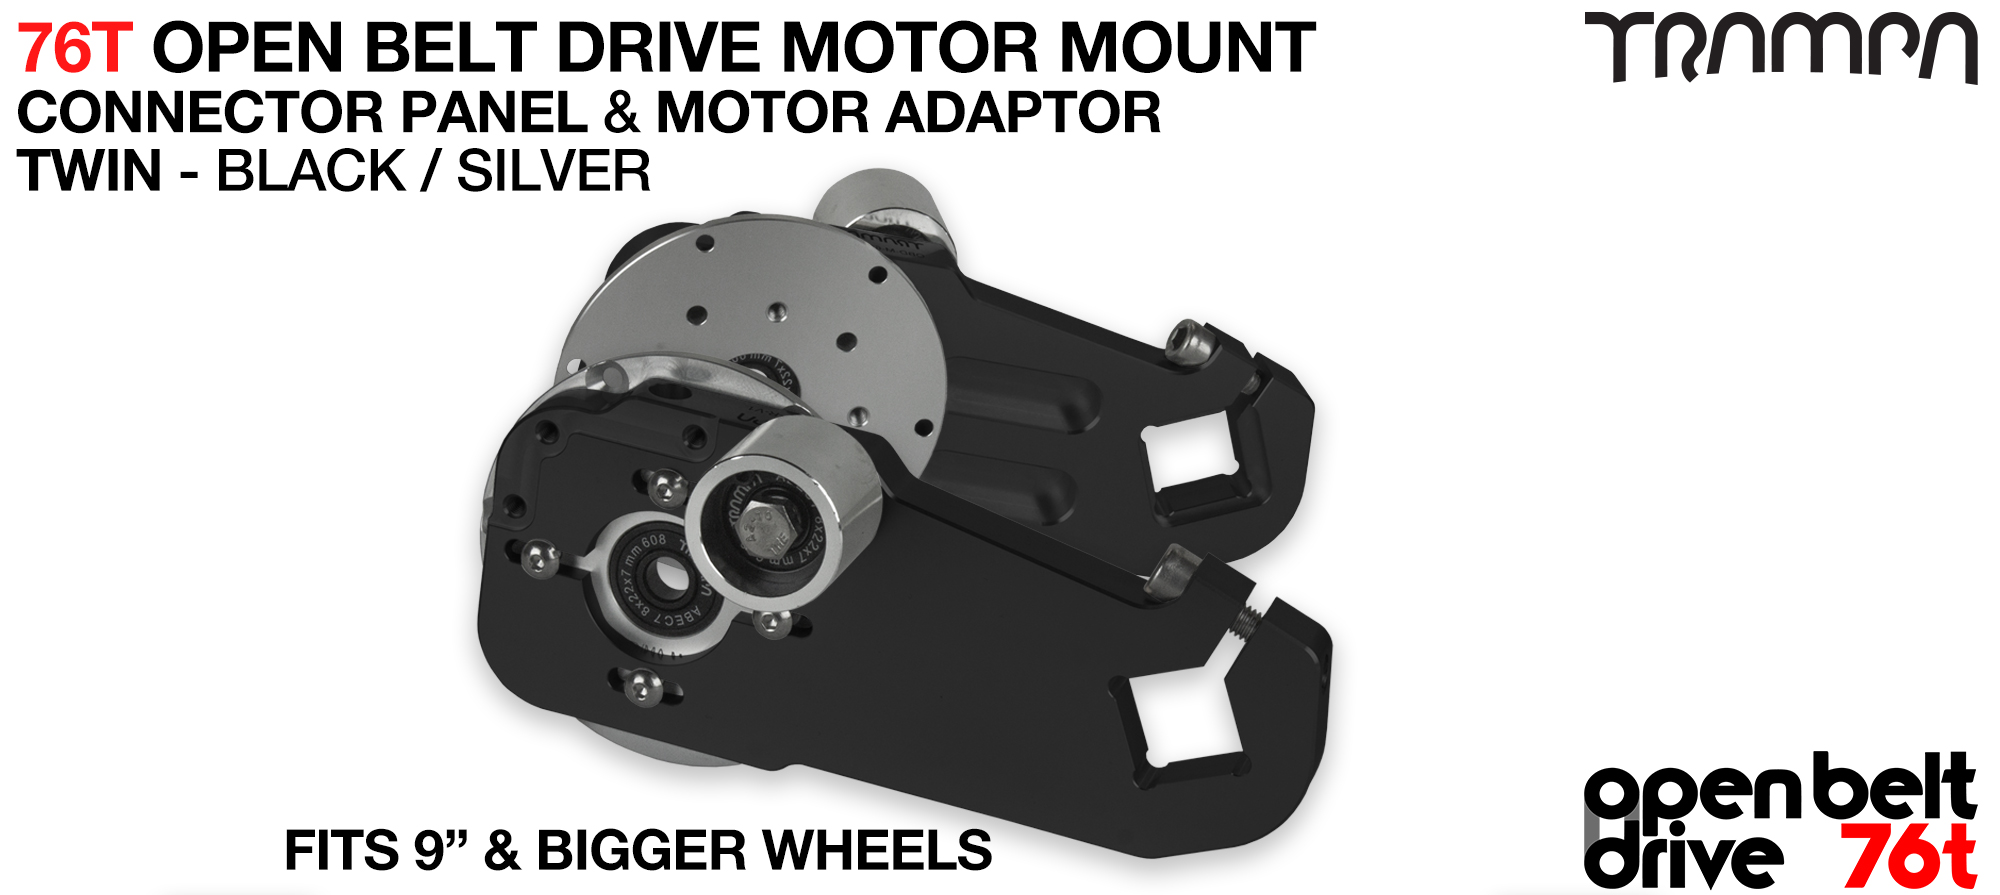 76T Open Belt Drive Motor Mount & Motor Adaptor - TWIN BLACK